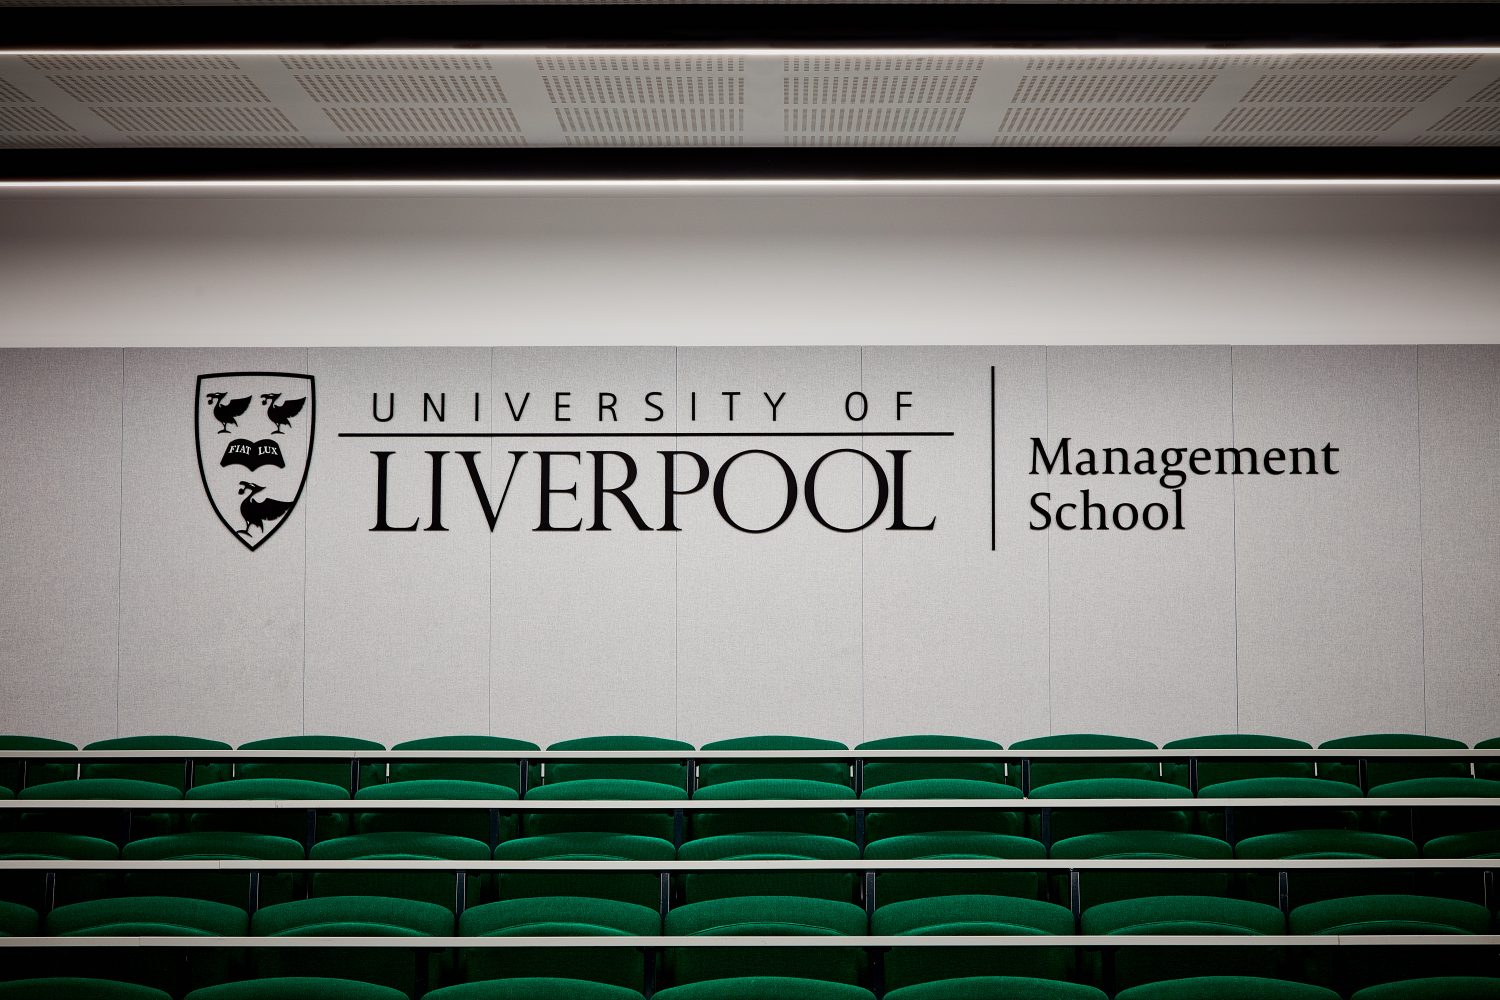 University of Liverpool School of Management